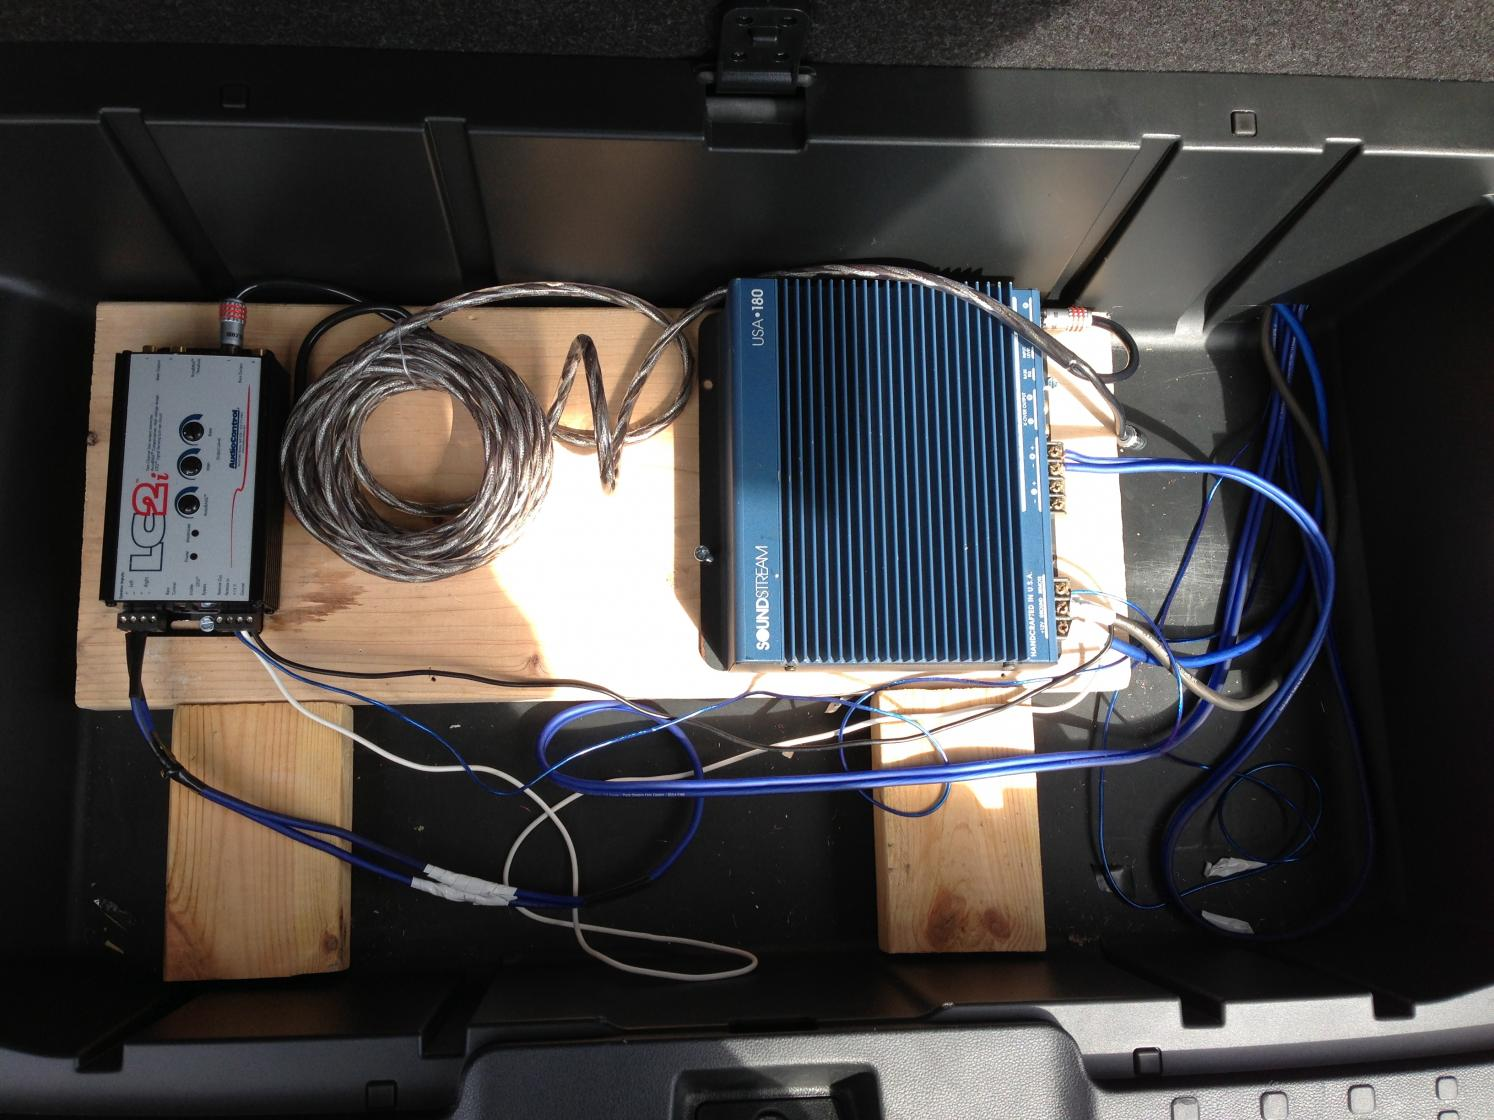 39236d1363286447 400 2012 ex l speaker upgrade img_2930 1 $400 2012 ex l speaker upgrade honda pilot honda pilot forums lc2i wiring diagram at webbmarketing.co